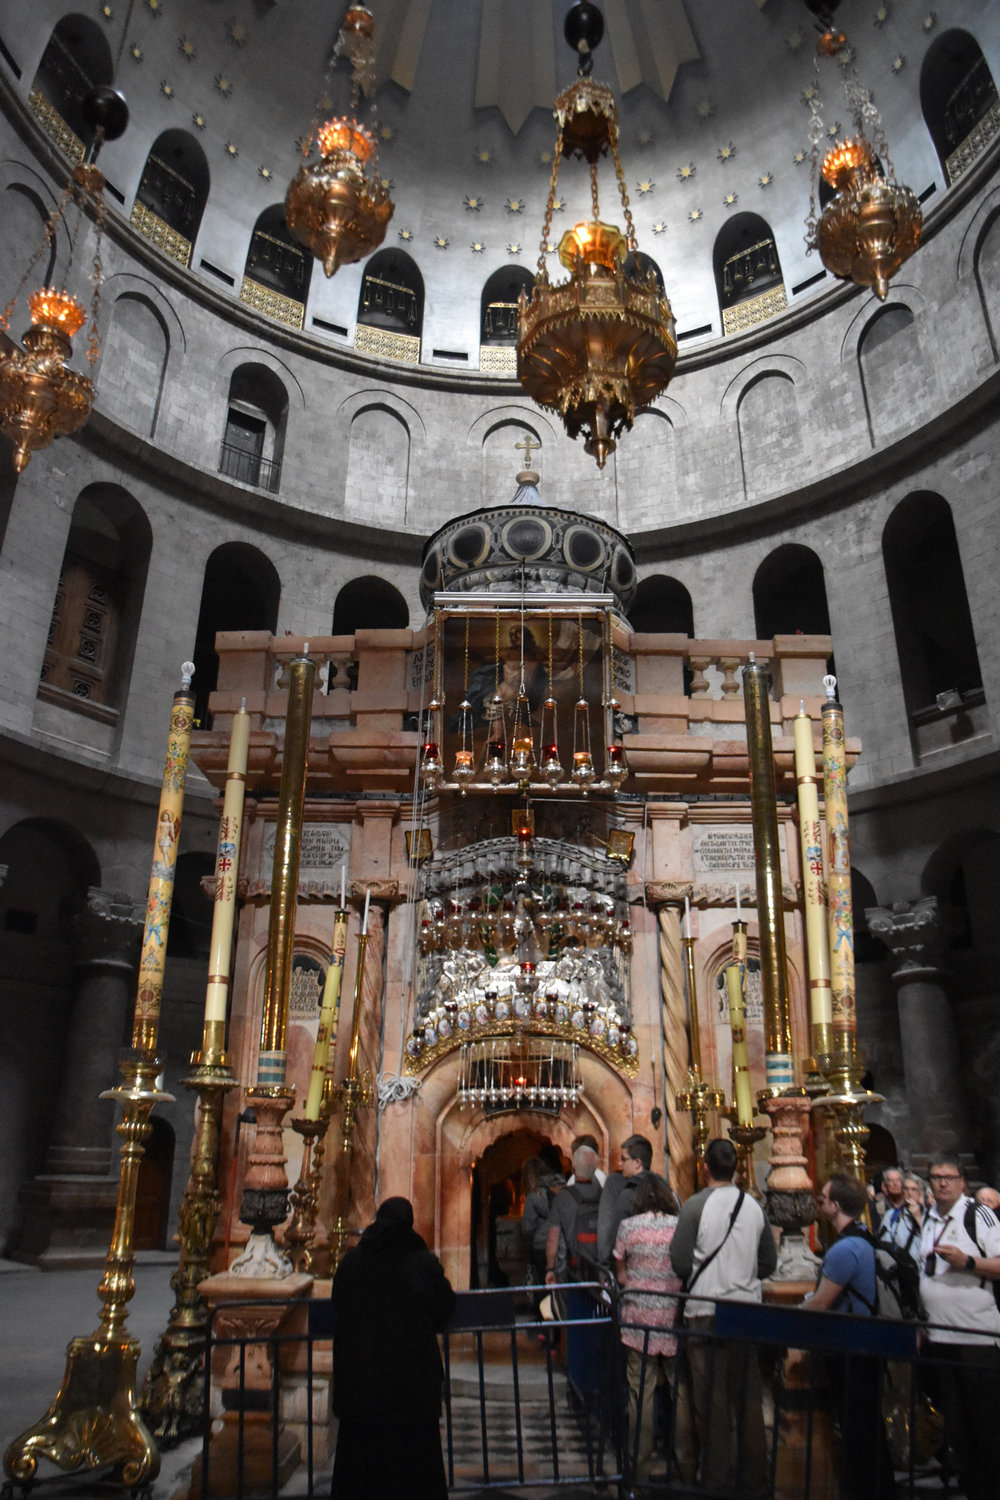 Jesus's tomb inside the Church of the Holy Sepulchre